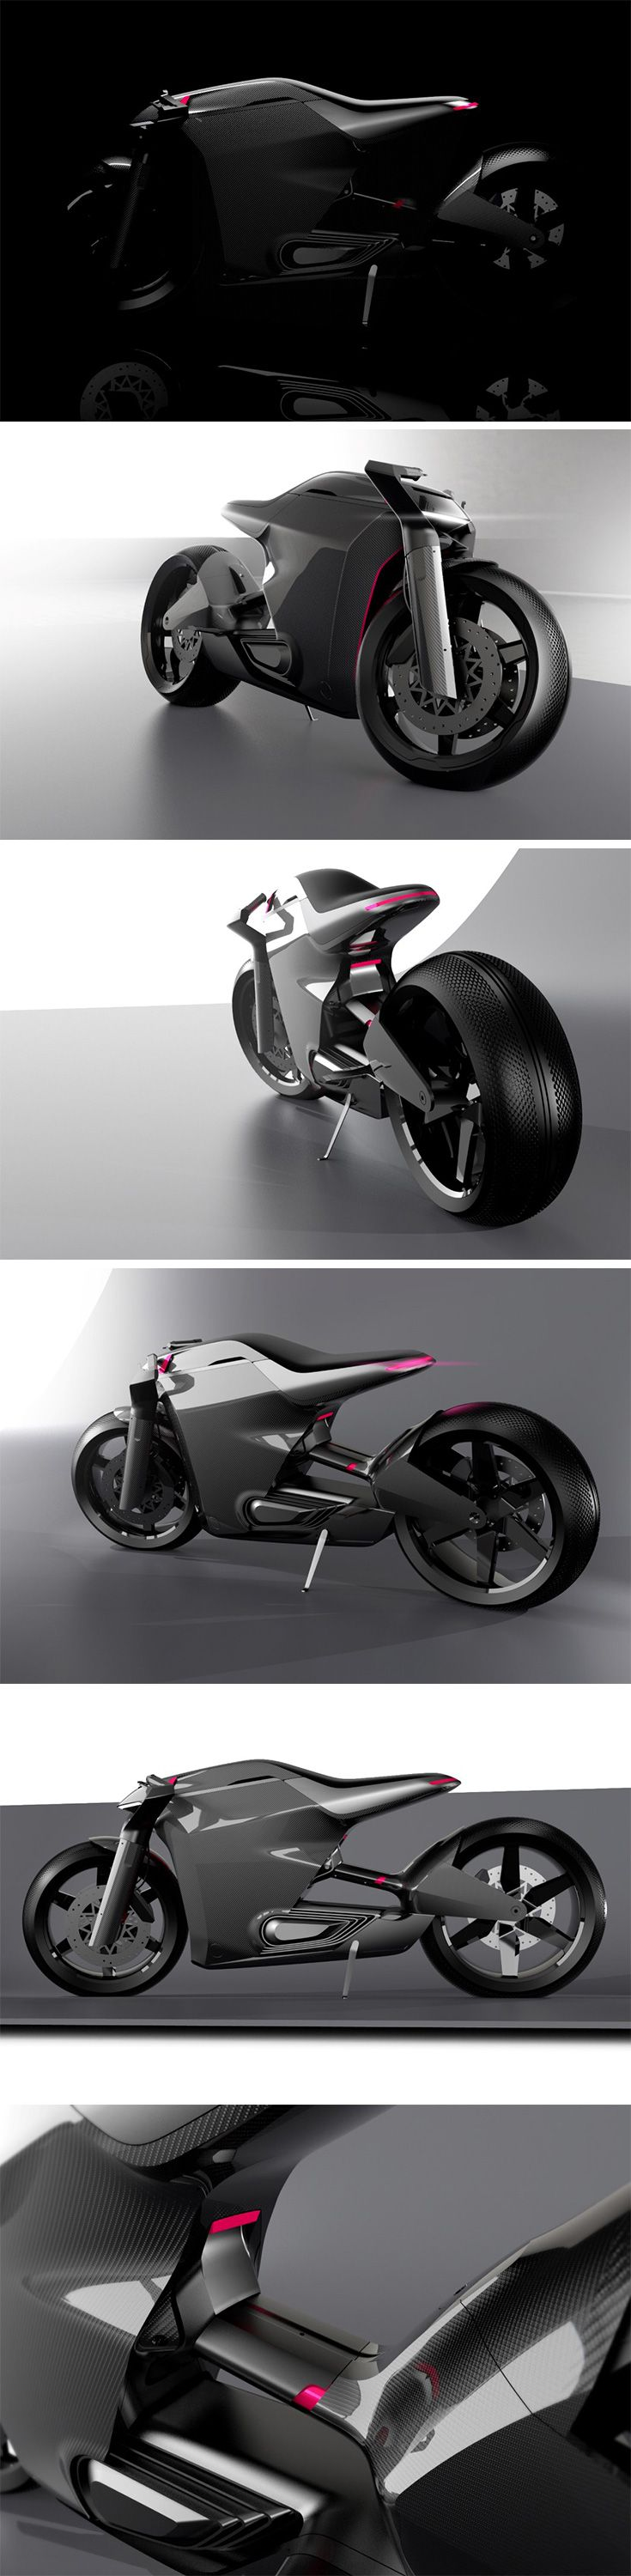 Two Wheels, by Gregor Duler started as a form exercise. It was born out of an attempt to merge two distinct bike types, the Cafe Racer, and the Naked Bike. With a little creative licence, design details began defining the bike, giving it an absolutely unique character.